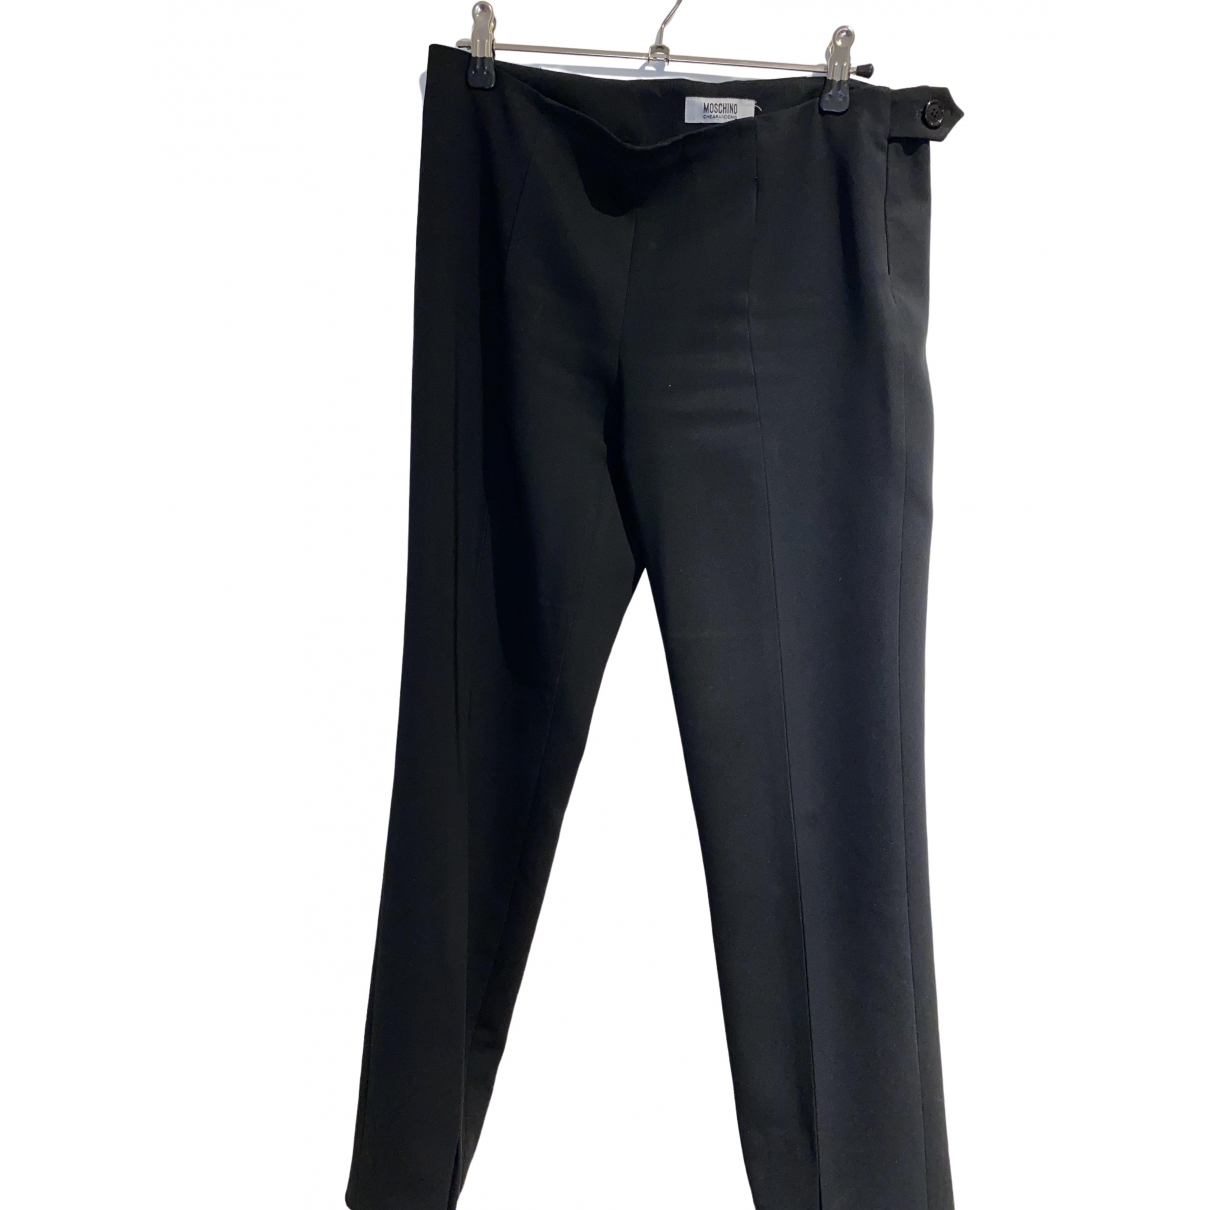 Moschino Cheap And Chic \N Black Trousers for Women M International